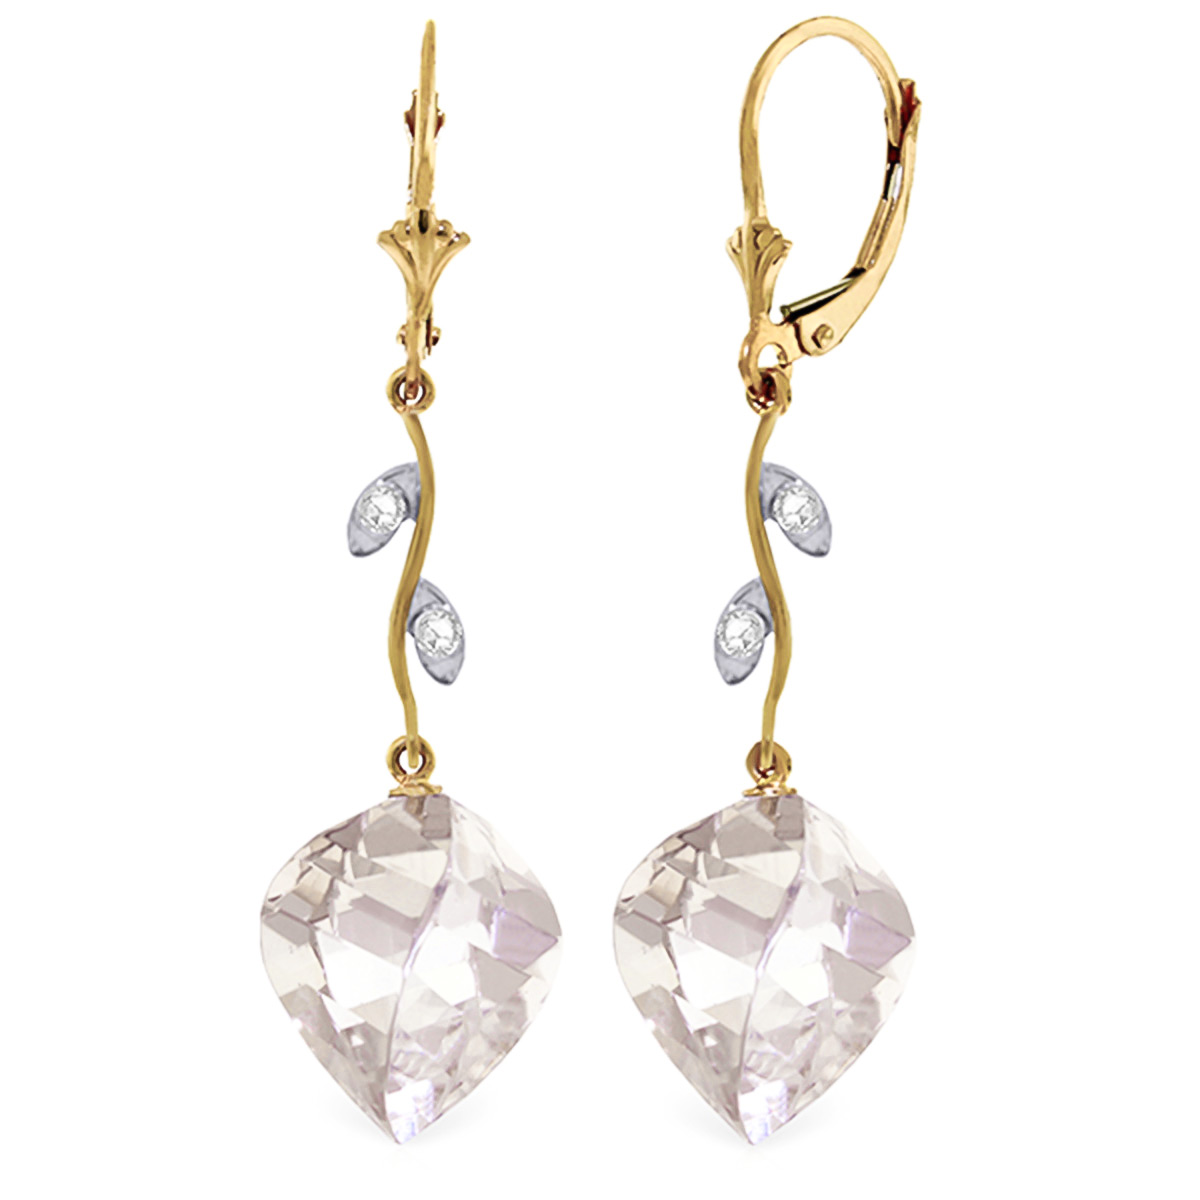 White Topaz Drop Earrings 25.62 ctw in 9ct Gold